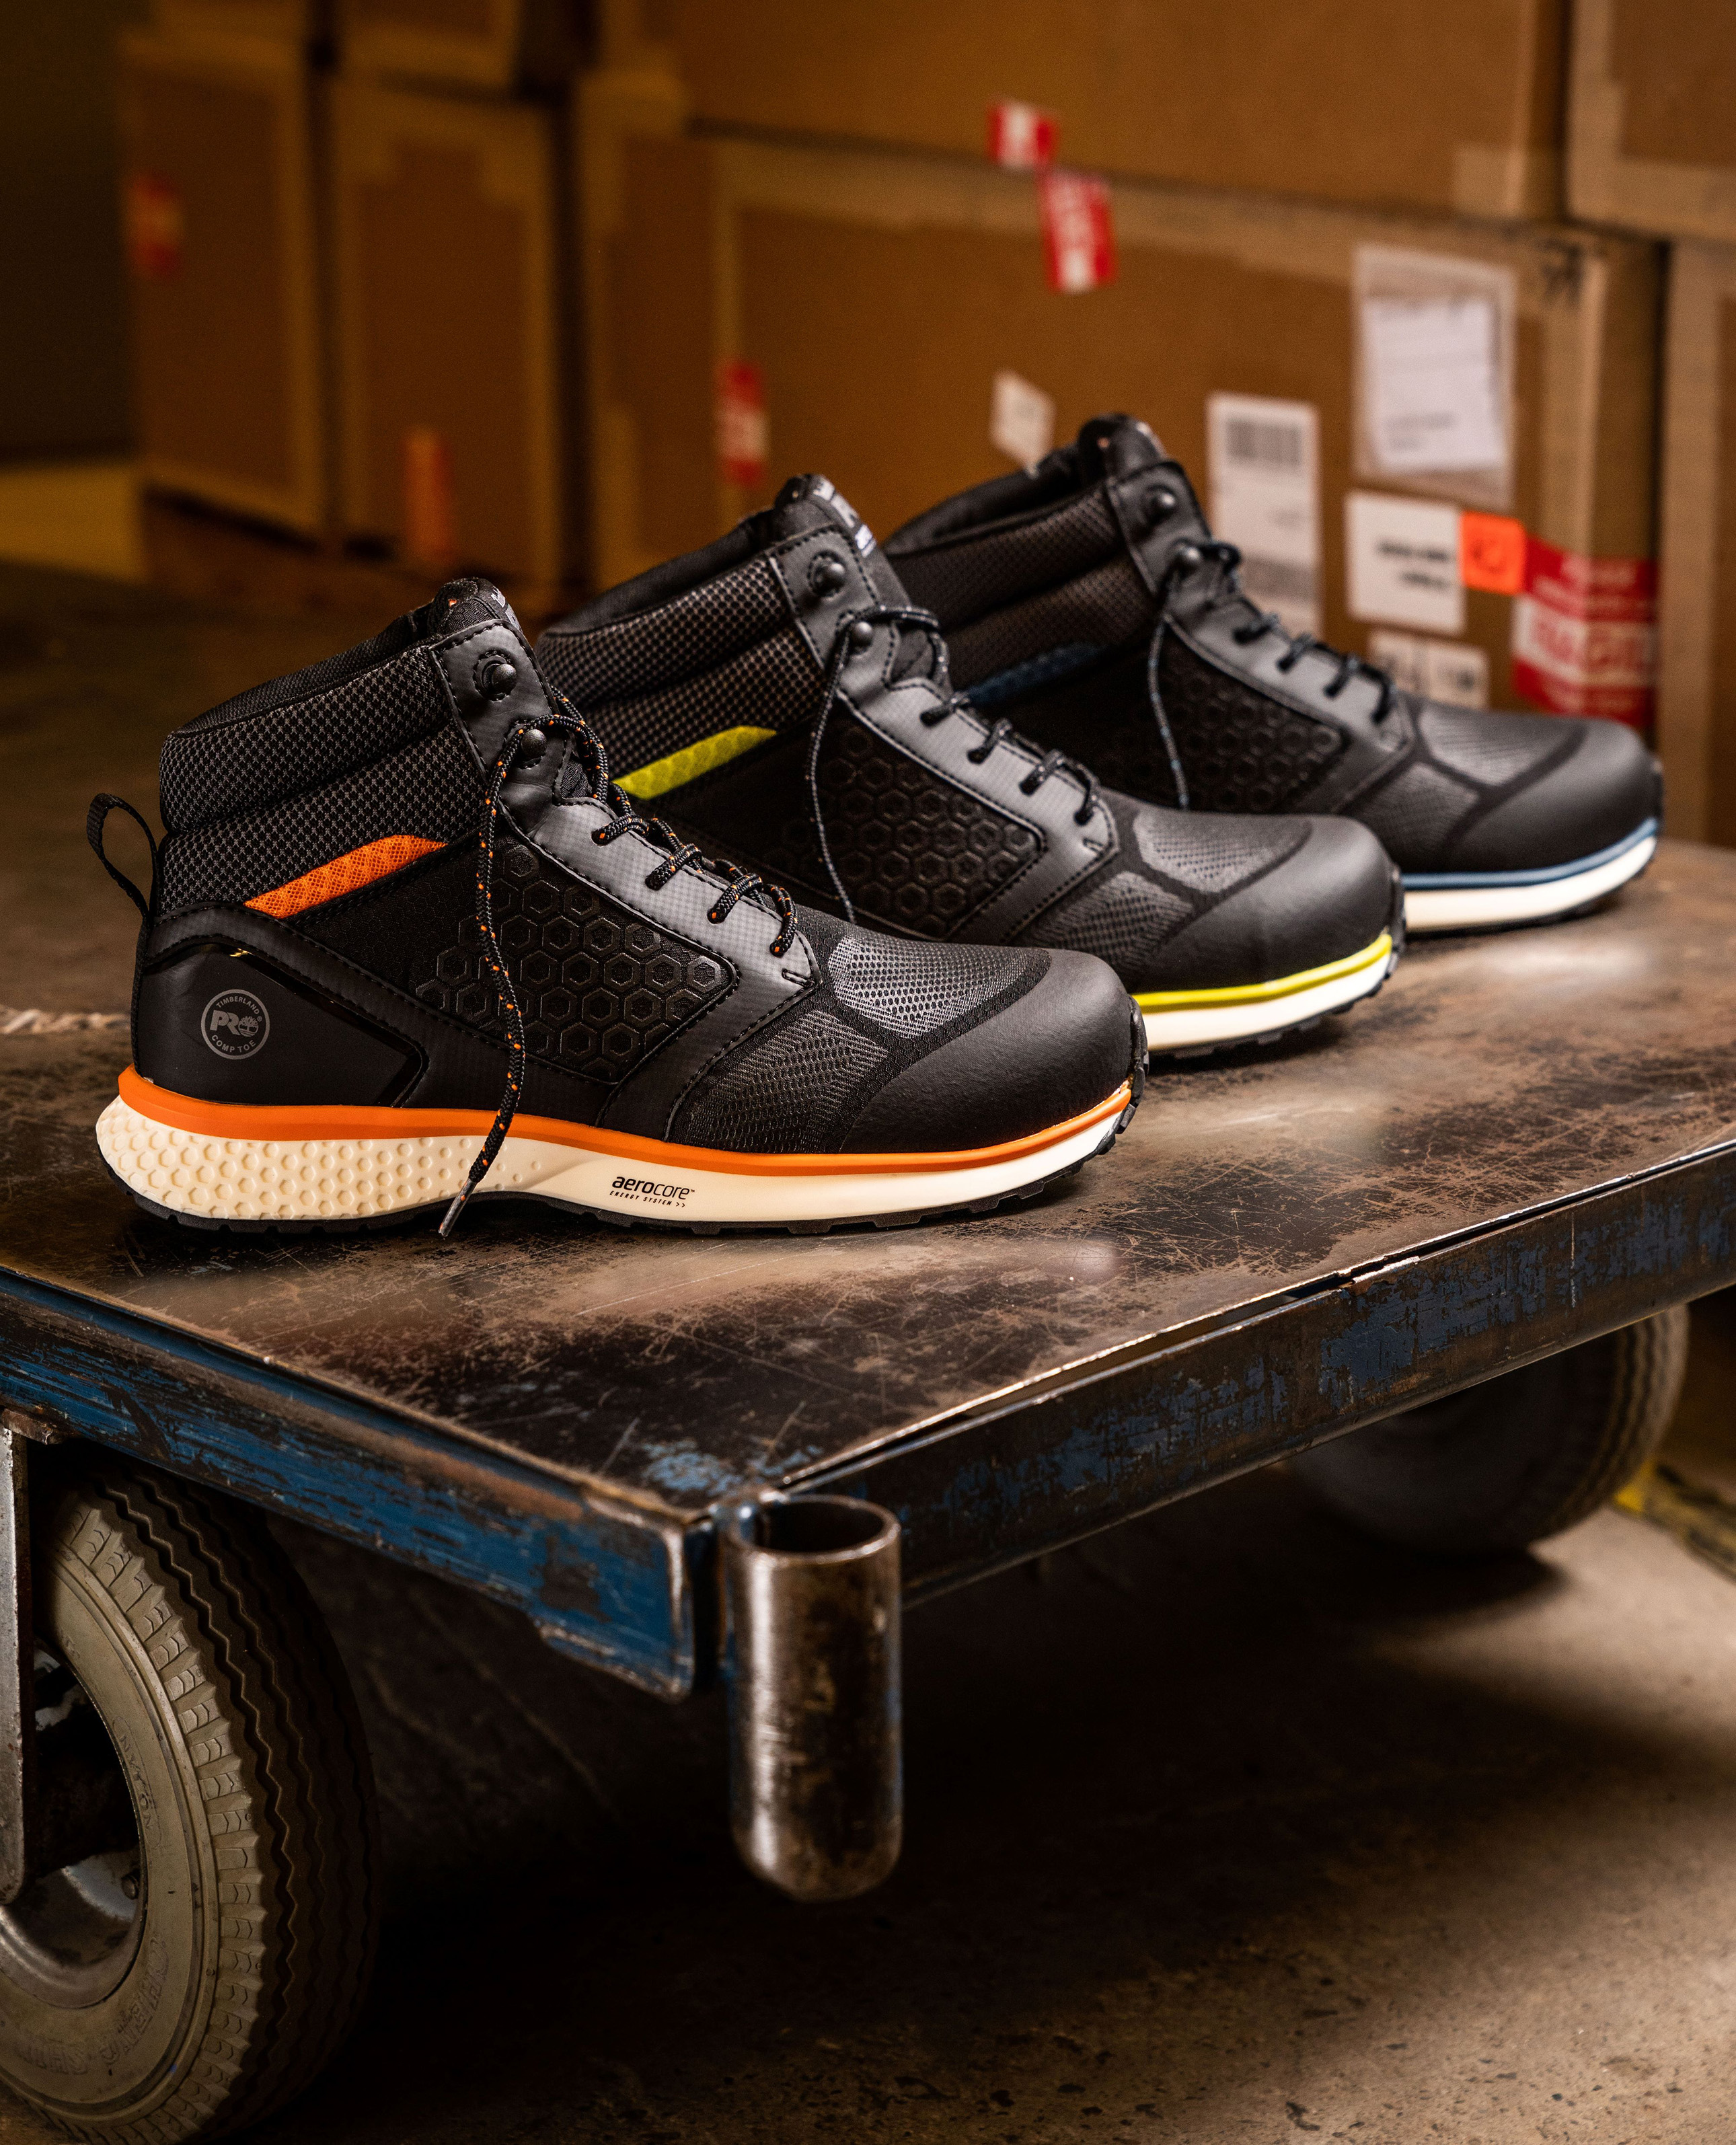 Timberland Pro safety shoes featuring Elastollan TPU and Elastopan PU from BASF (Source: BASF)